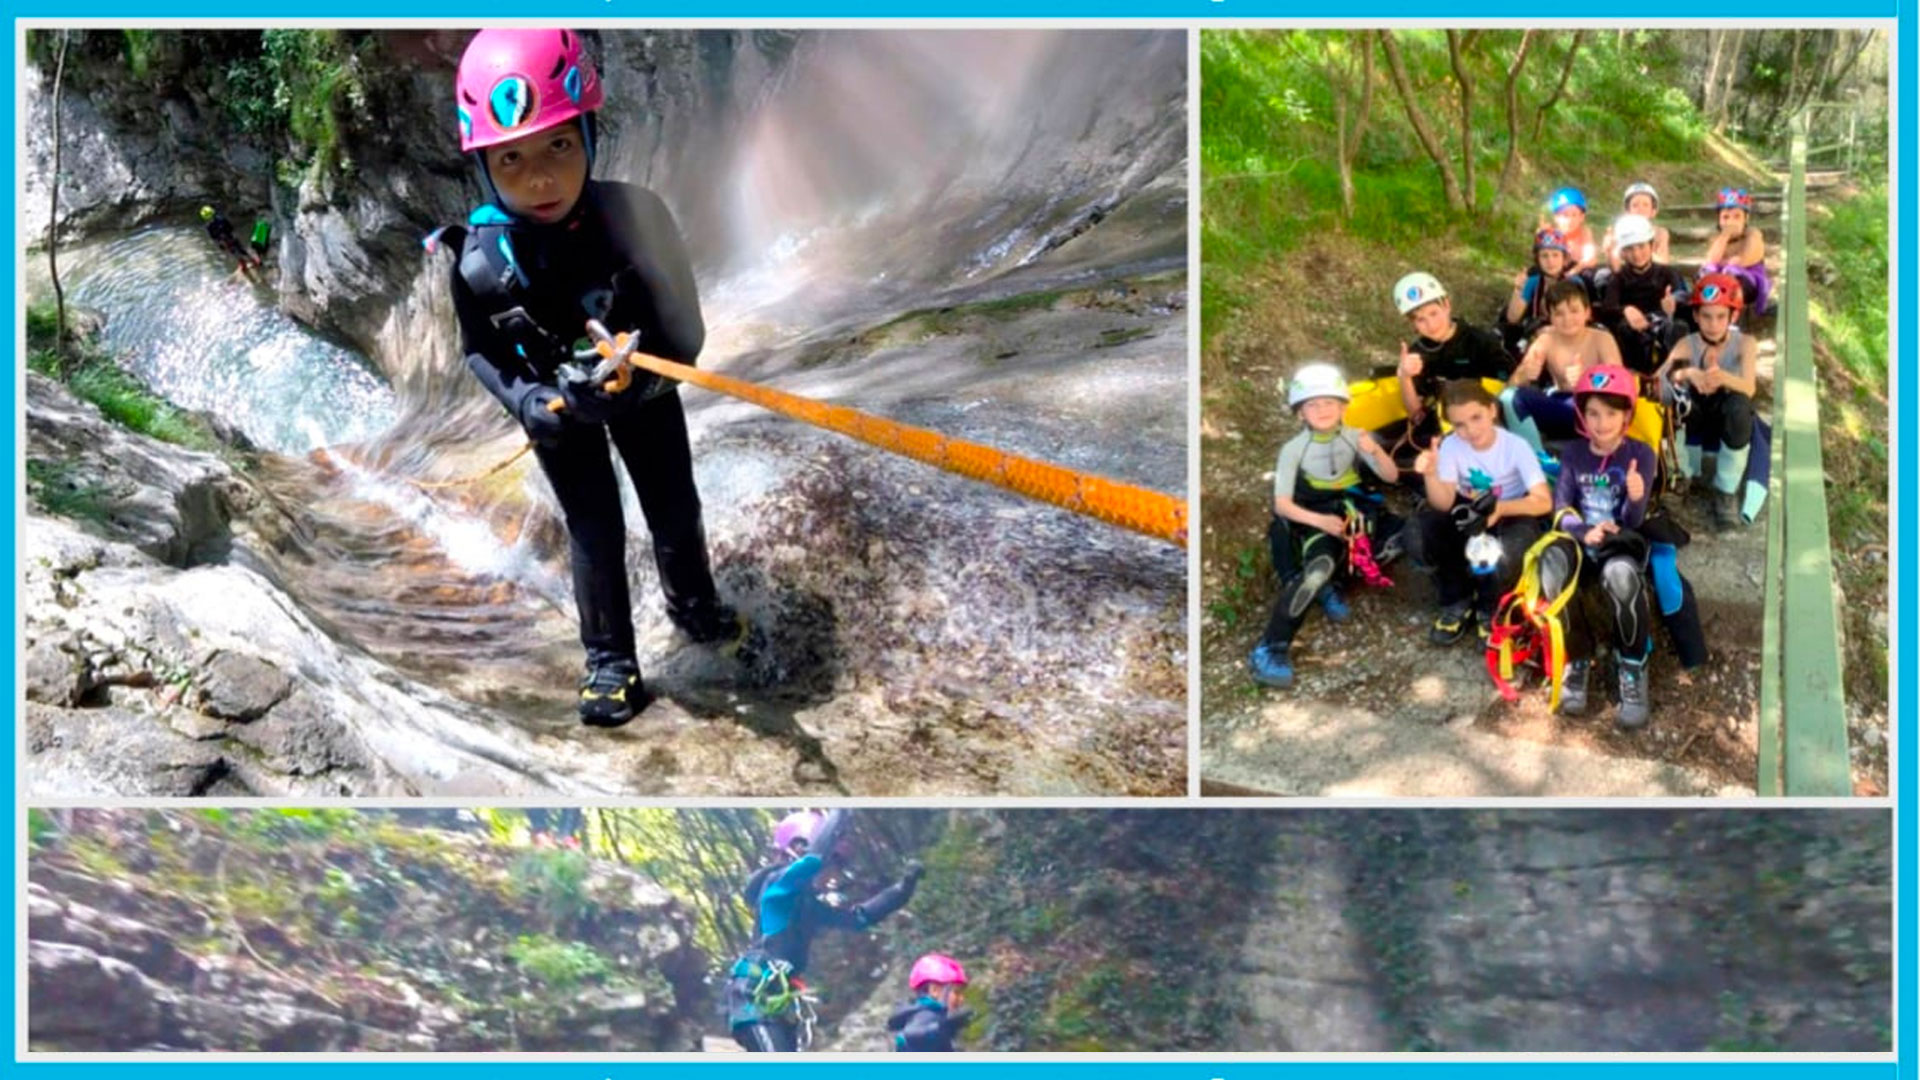 Kids practicing canyoning during camp